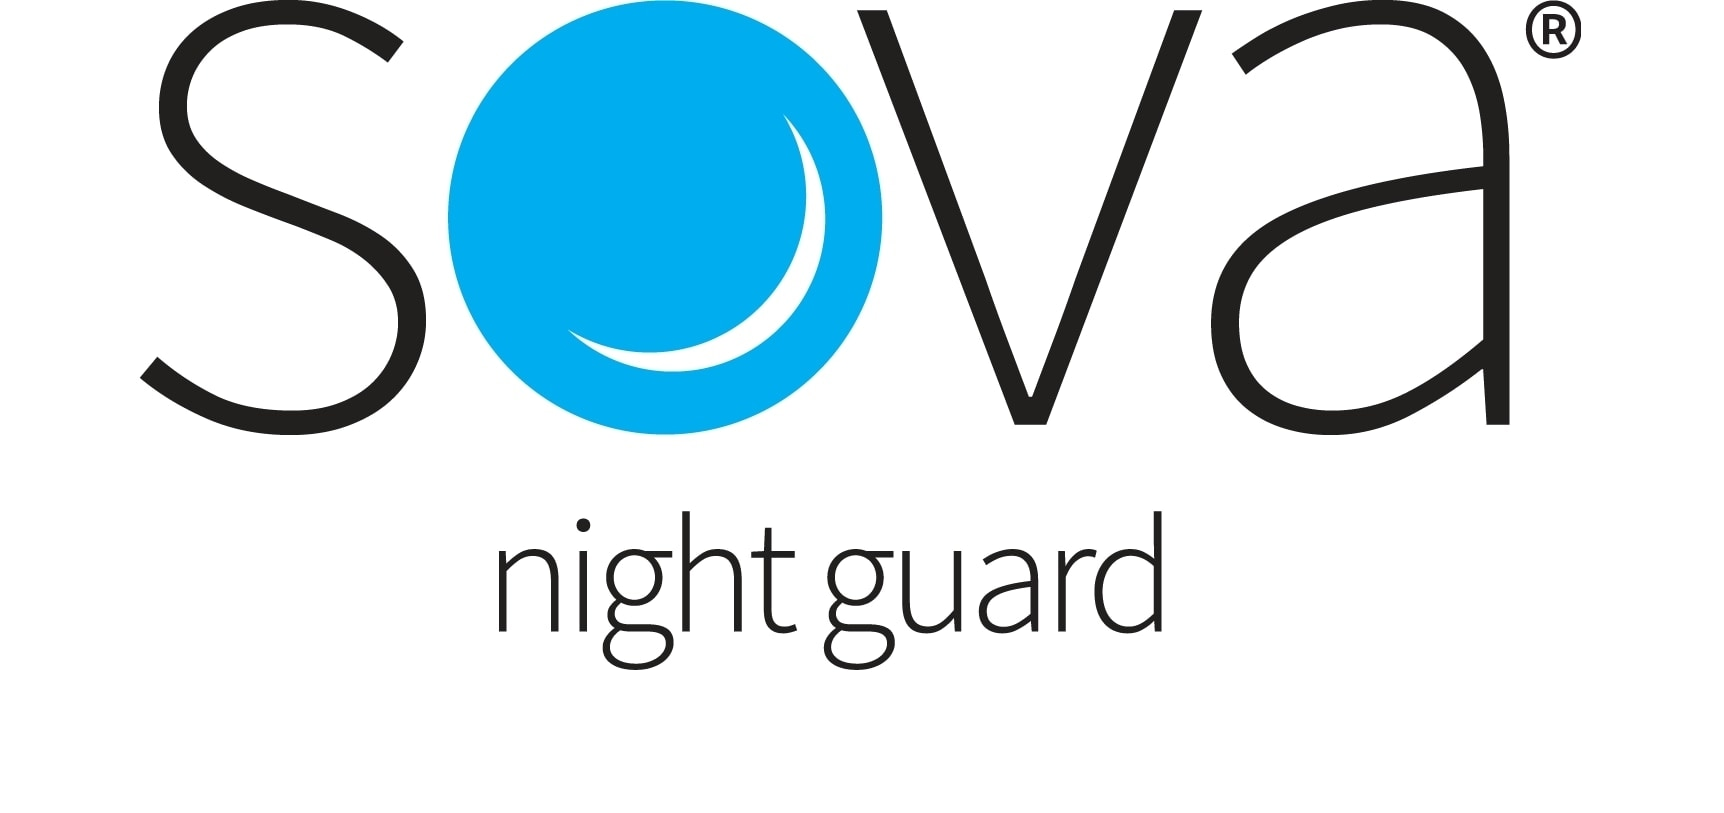 SOVA Night Guard